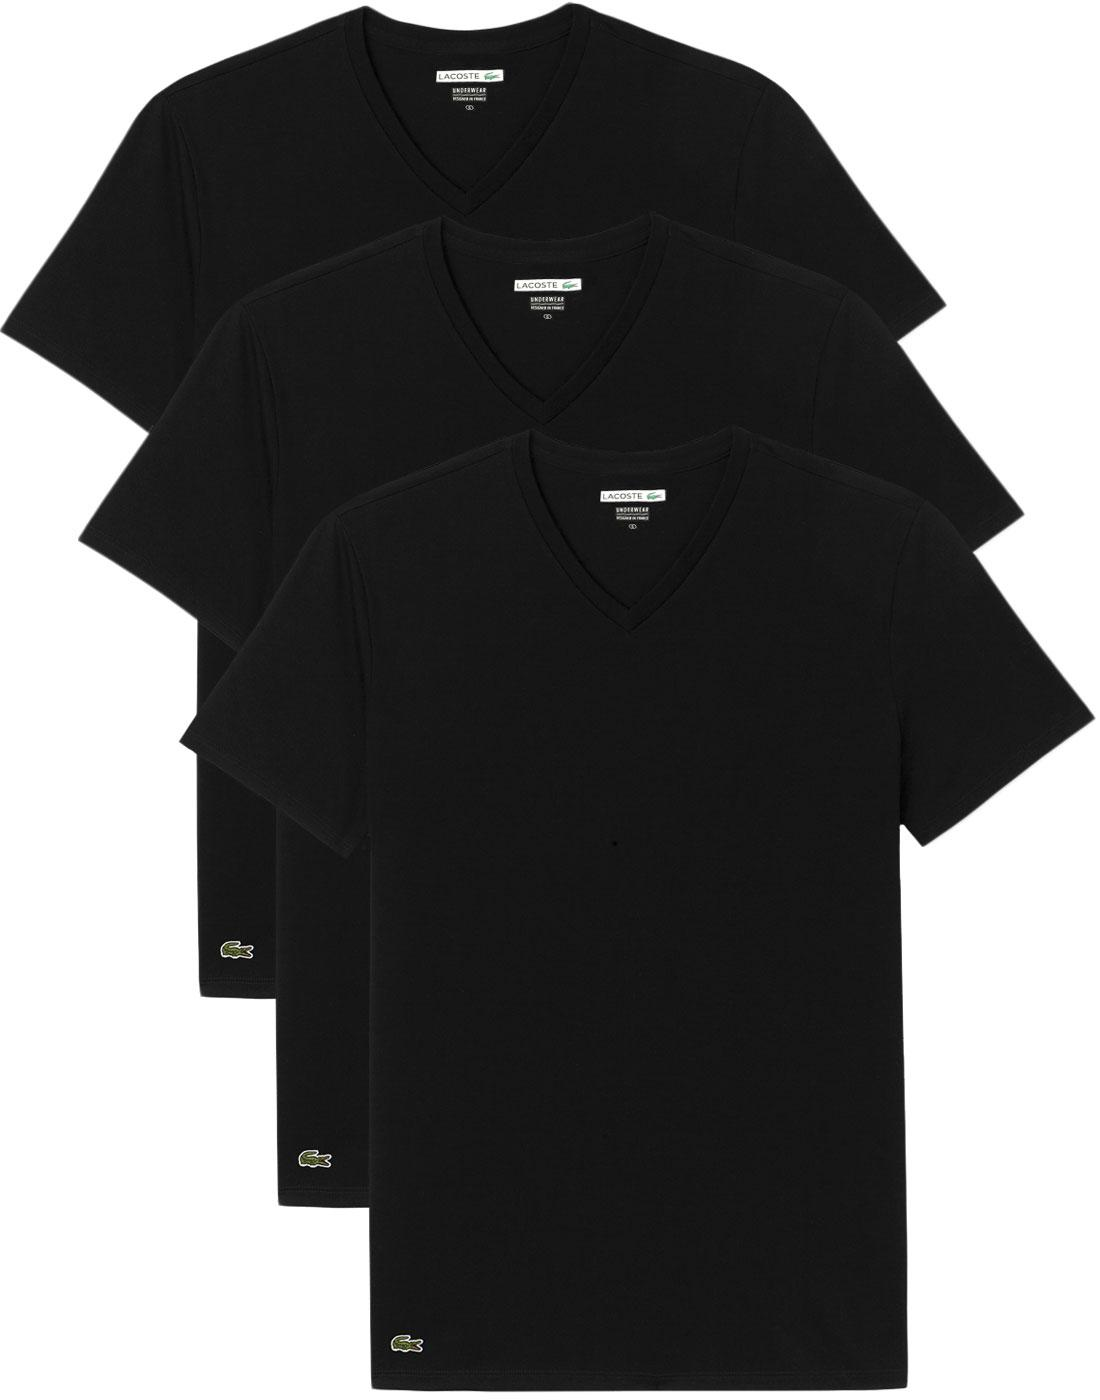 LACOSTE Men's 3 Pack Boxed V-Neck T-Shirt - BLACK